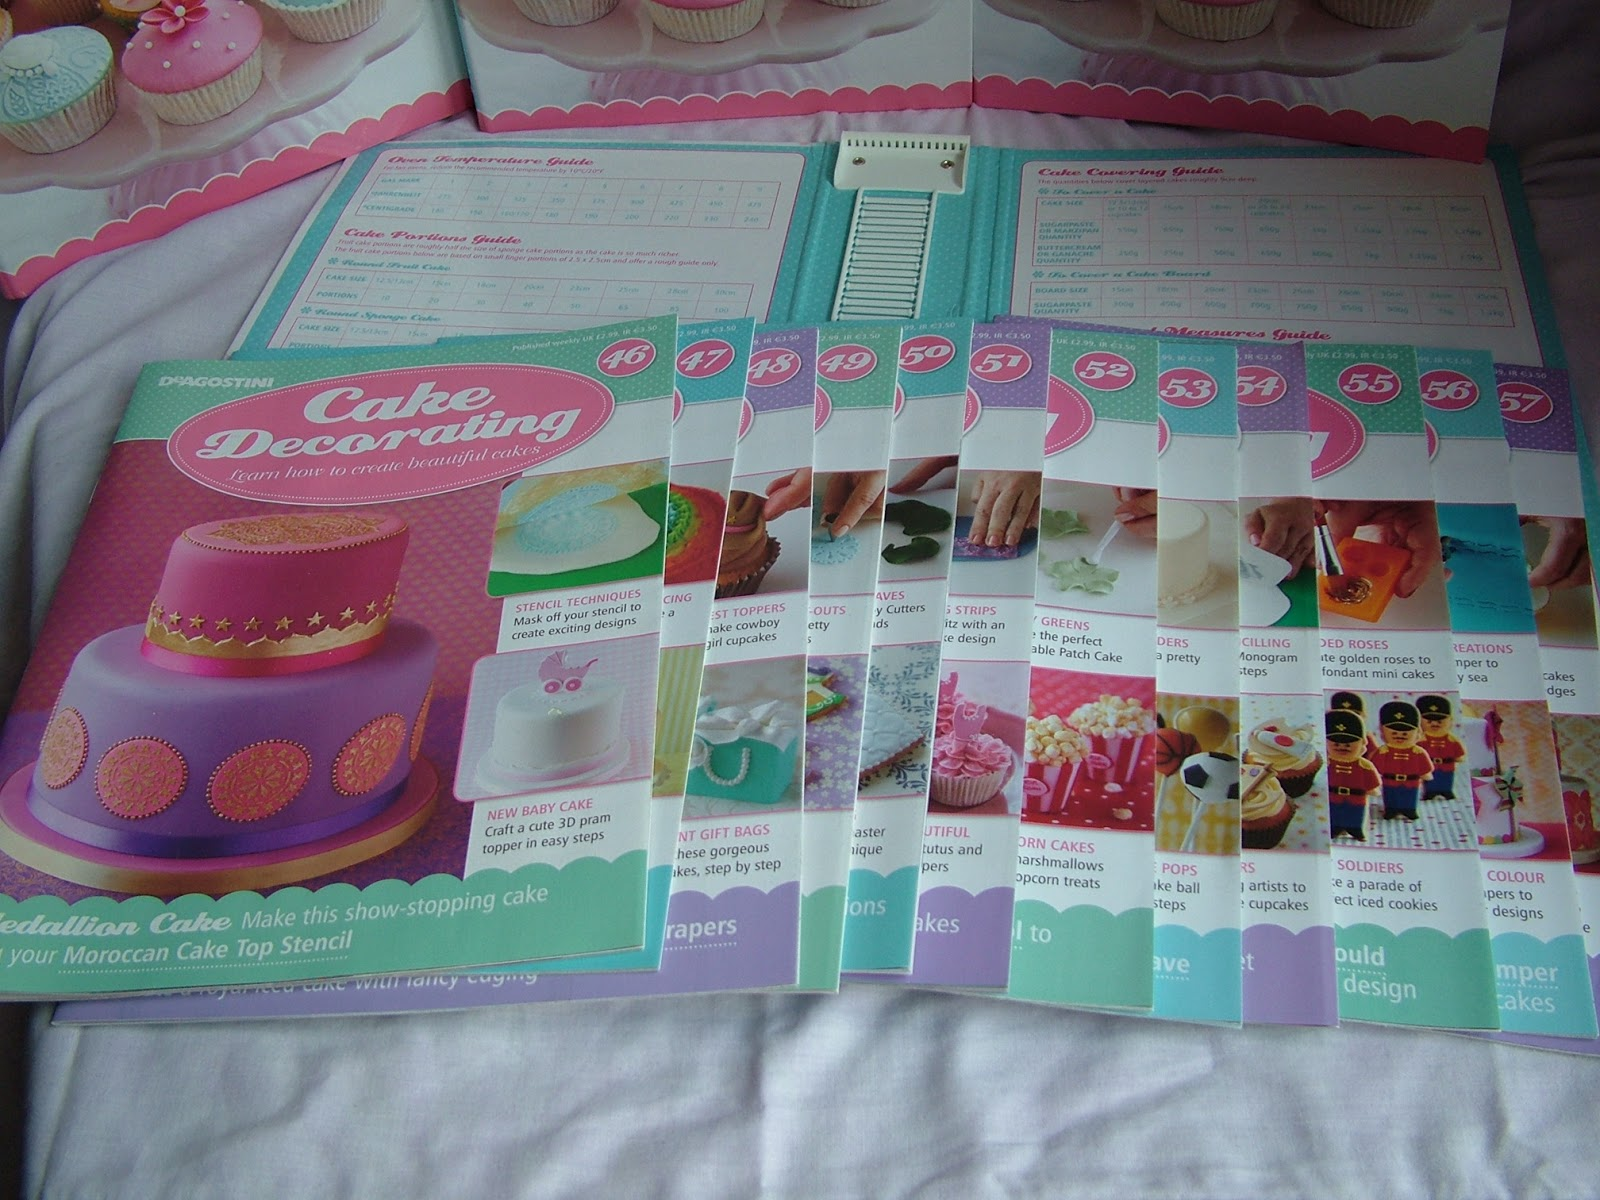 Cakes and Bakes by Kate  Review   Cake Decorating Magazine Each magazine contains a cake decorating tool and is packed with recipes   tips and step by step guides to making beautiful cakes and cupcakes